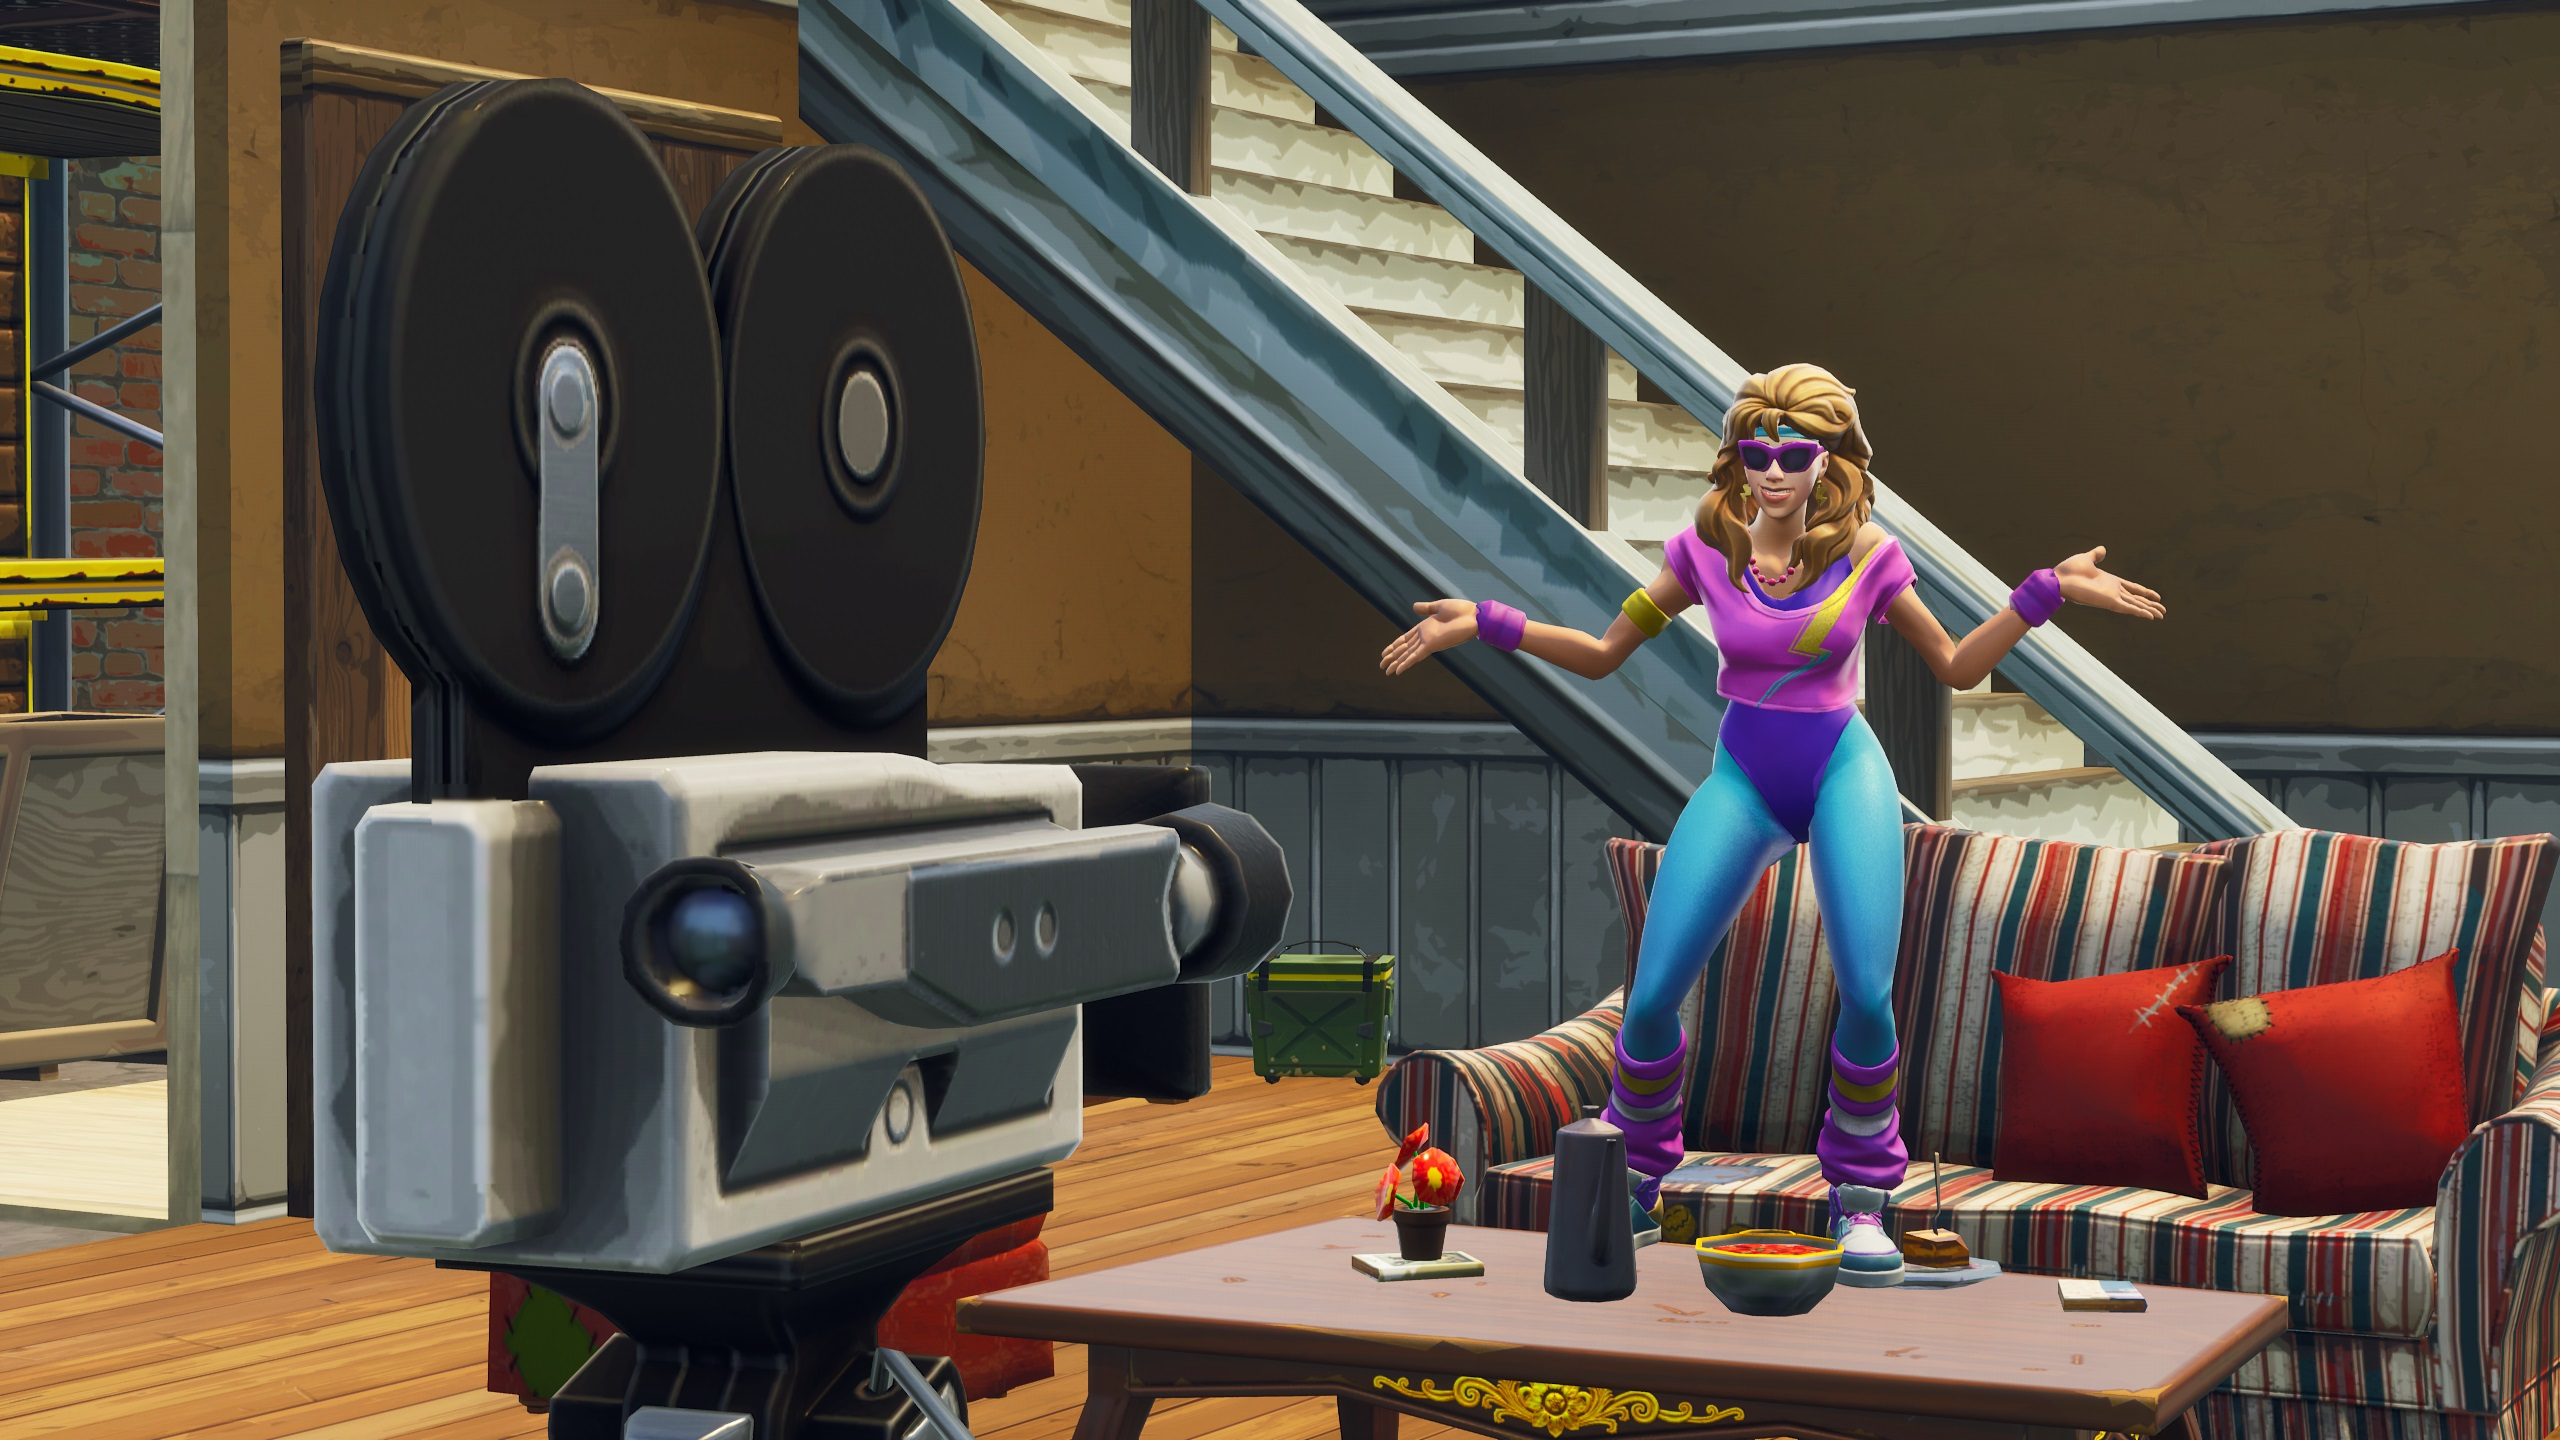 Fortnite replay mode: keyboard shortcuts, camera options